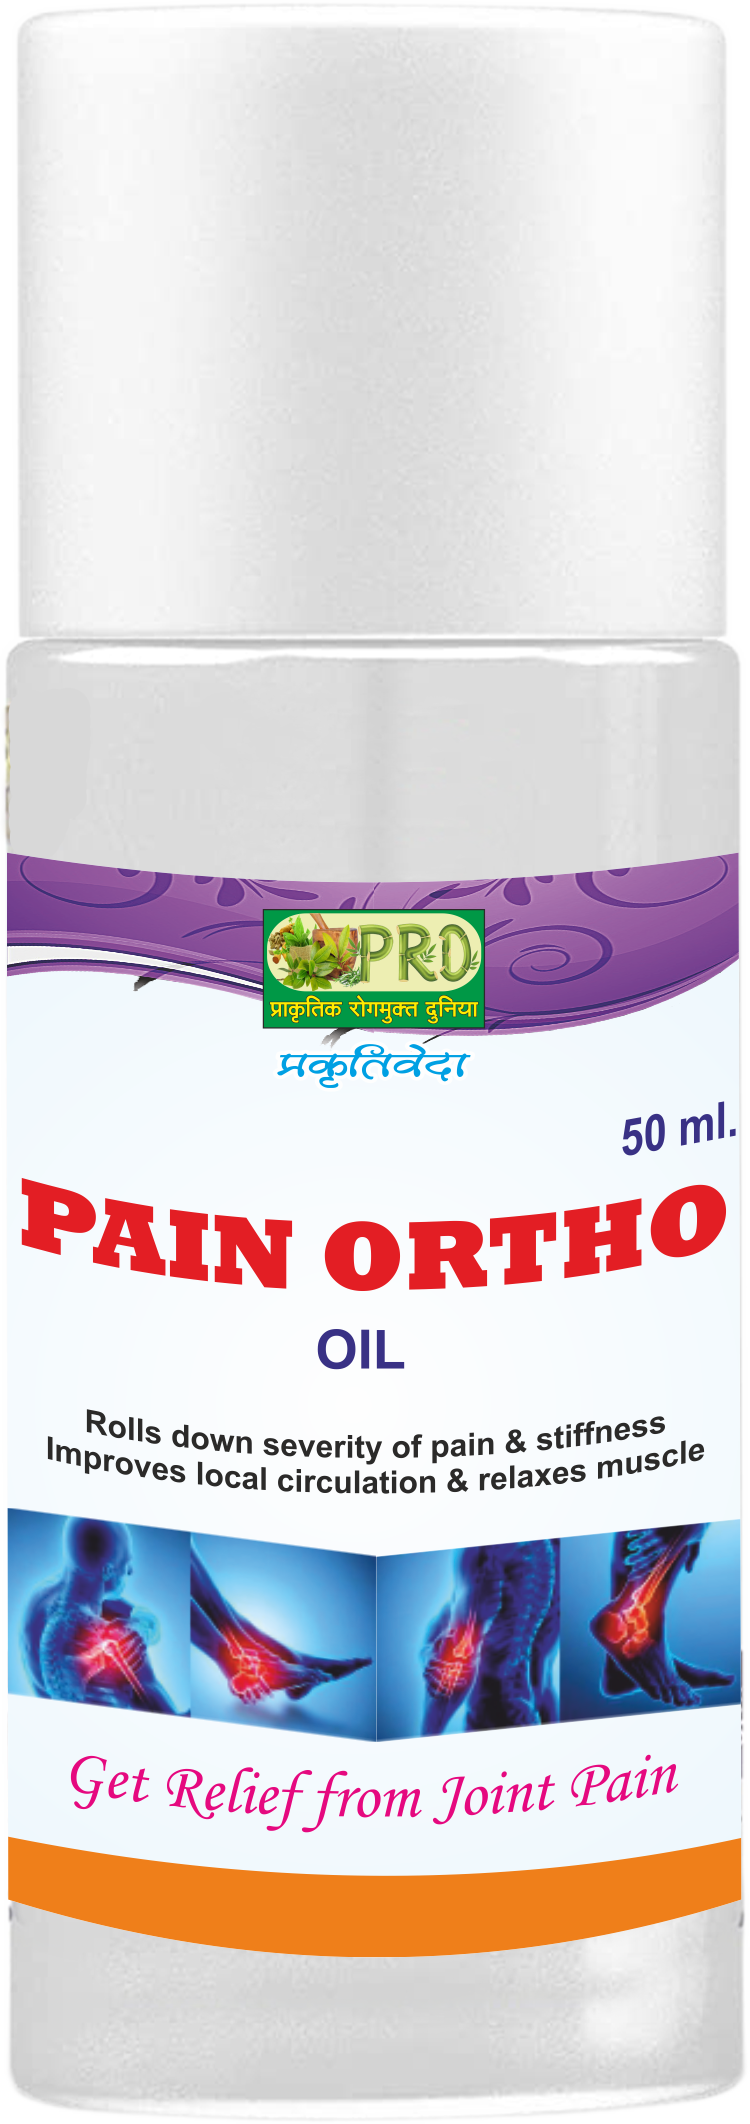 PAIN ORTHO OIL